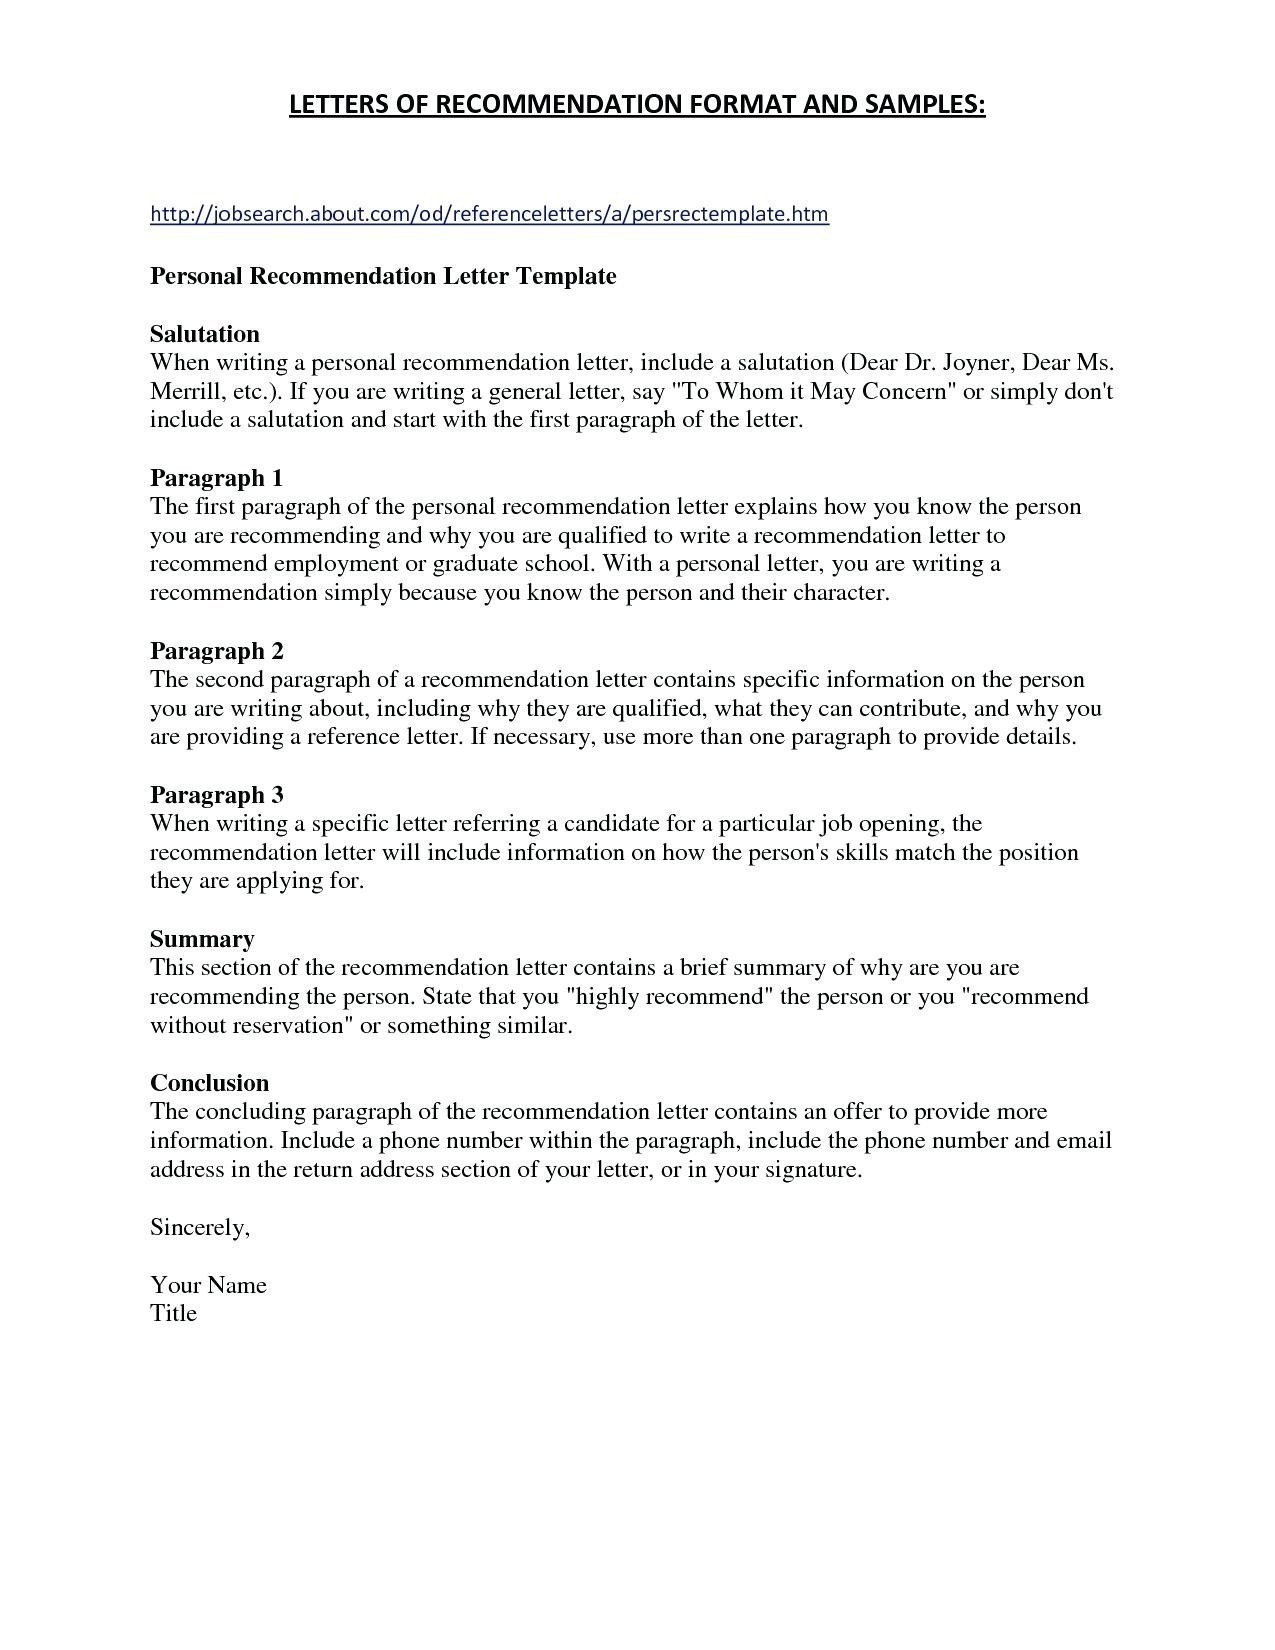 letter of endorsement template Collection-Letter Re mendation From A Doctor Save 2018 Letter Format Writing Nineseventyfve 2-g